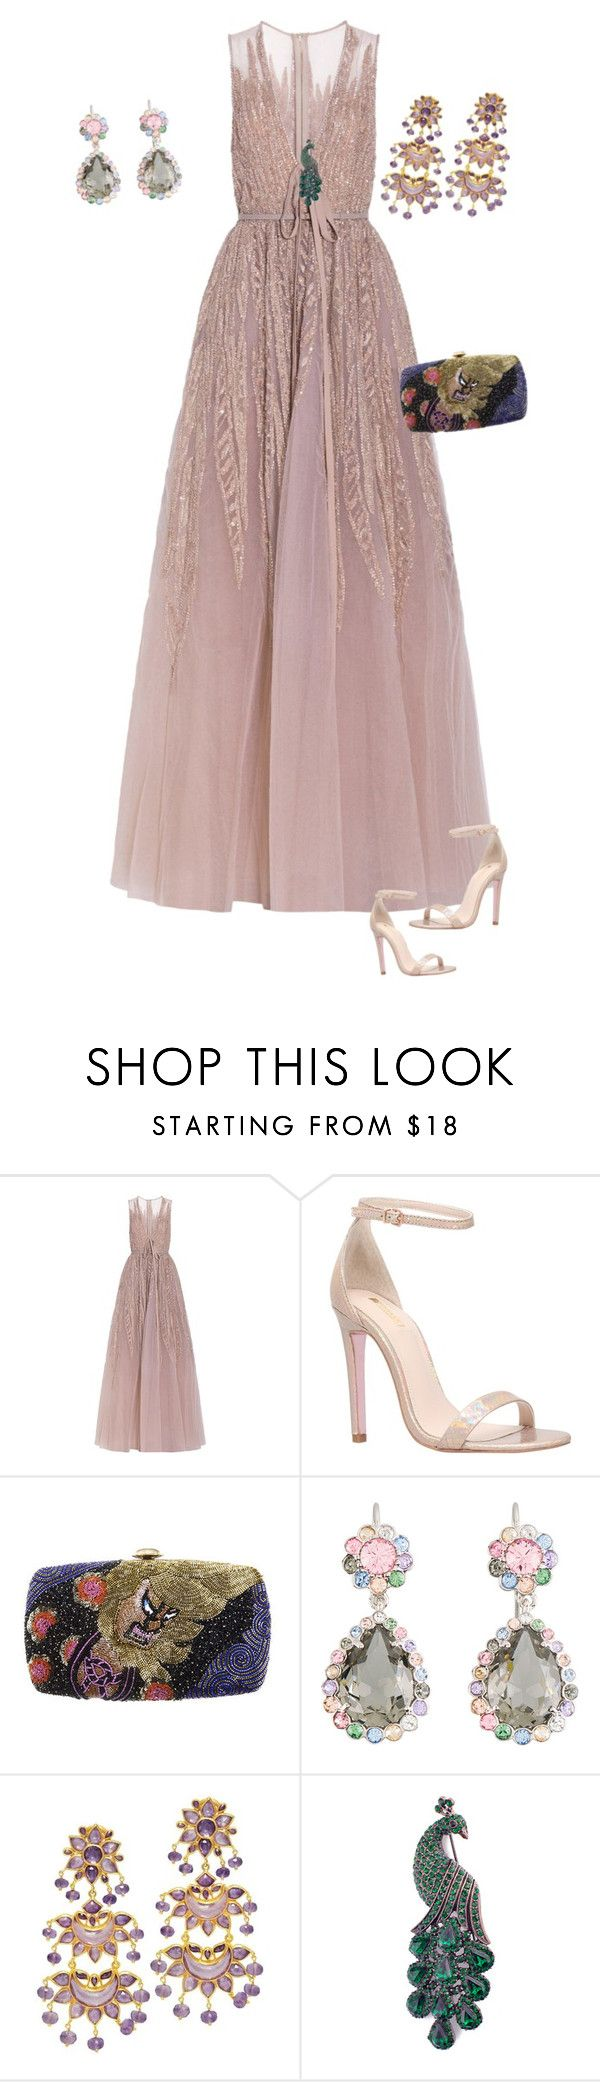 """Untitled #606"" by clothes-wise ❤ liked on Polyvore featuring Elie Saab, Carvela, Forest of Chintz and Miu Miu"